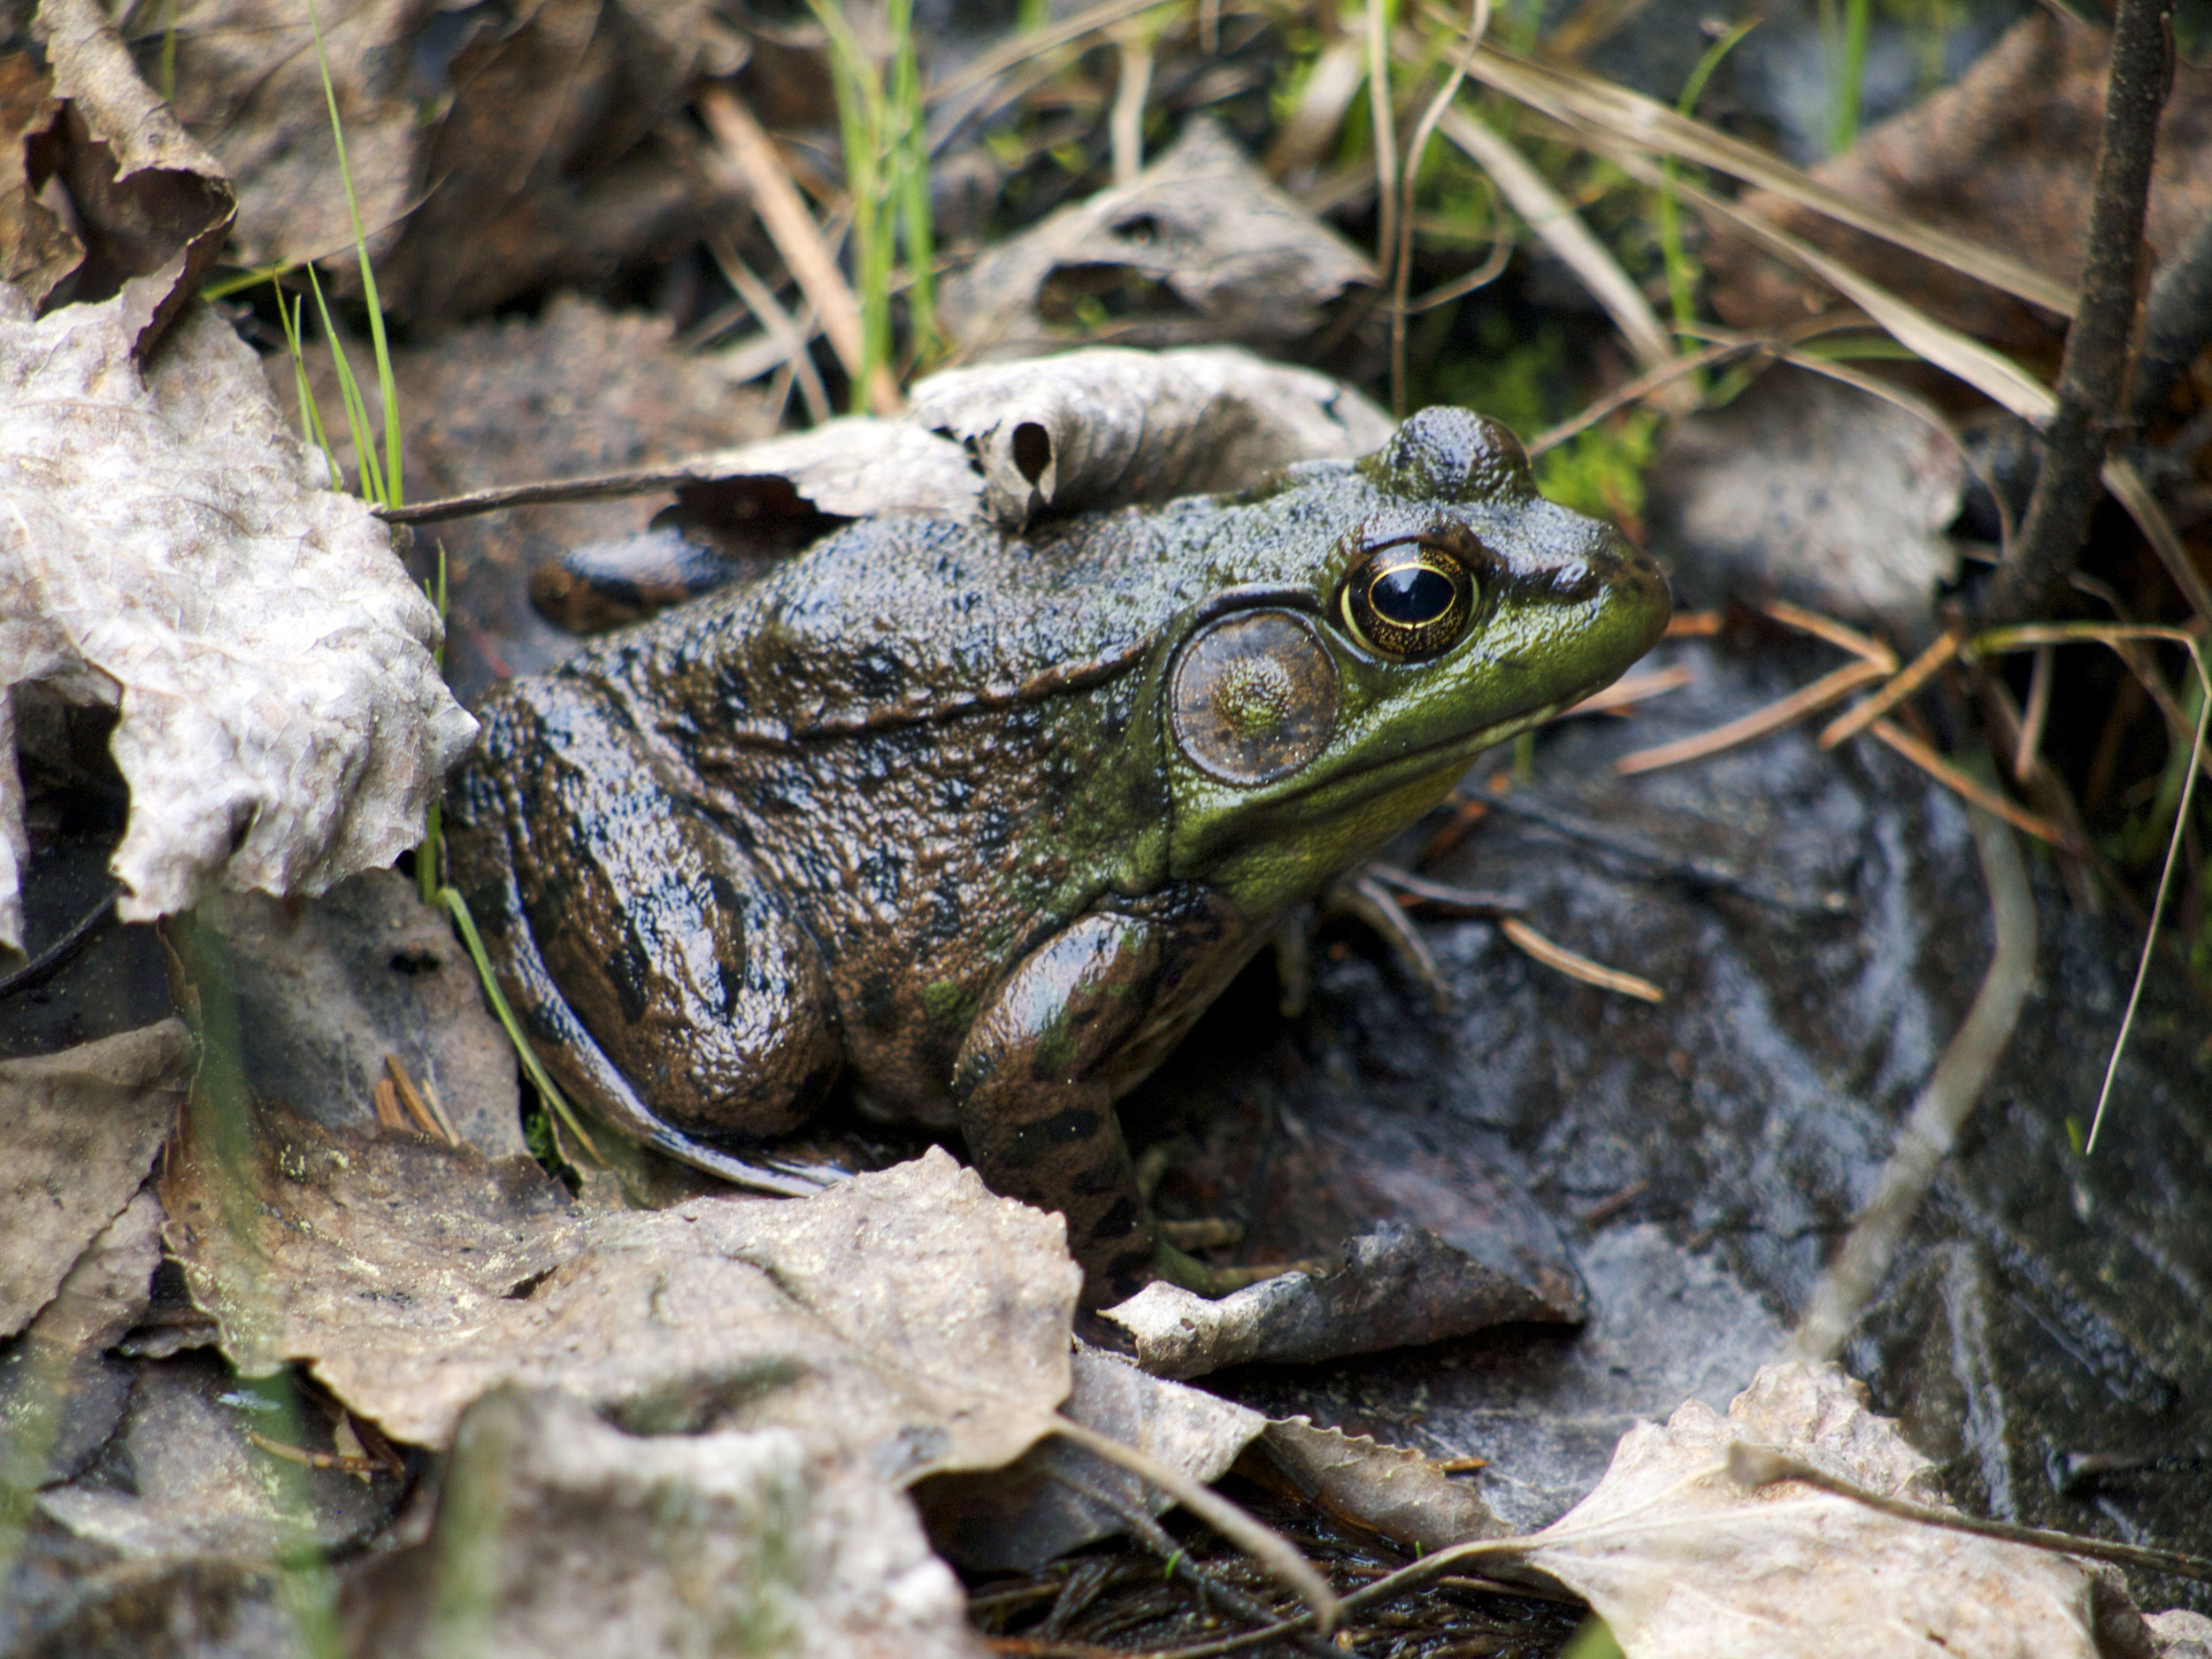 Frog, Algonquin P.P. Ontario - Photo by Tim Giller